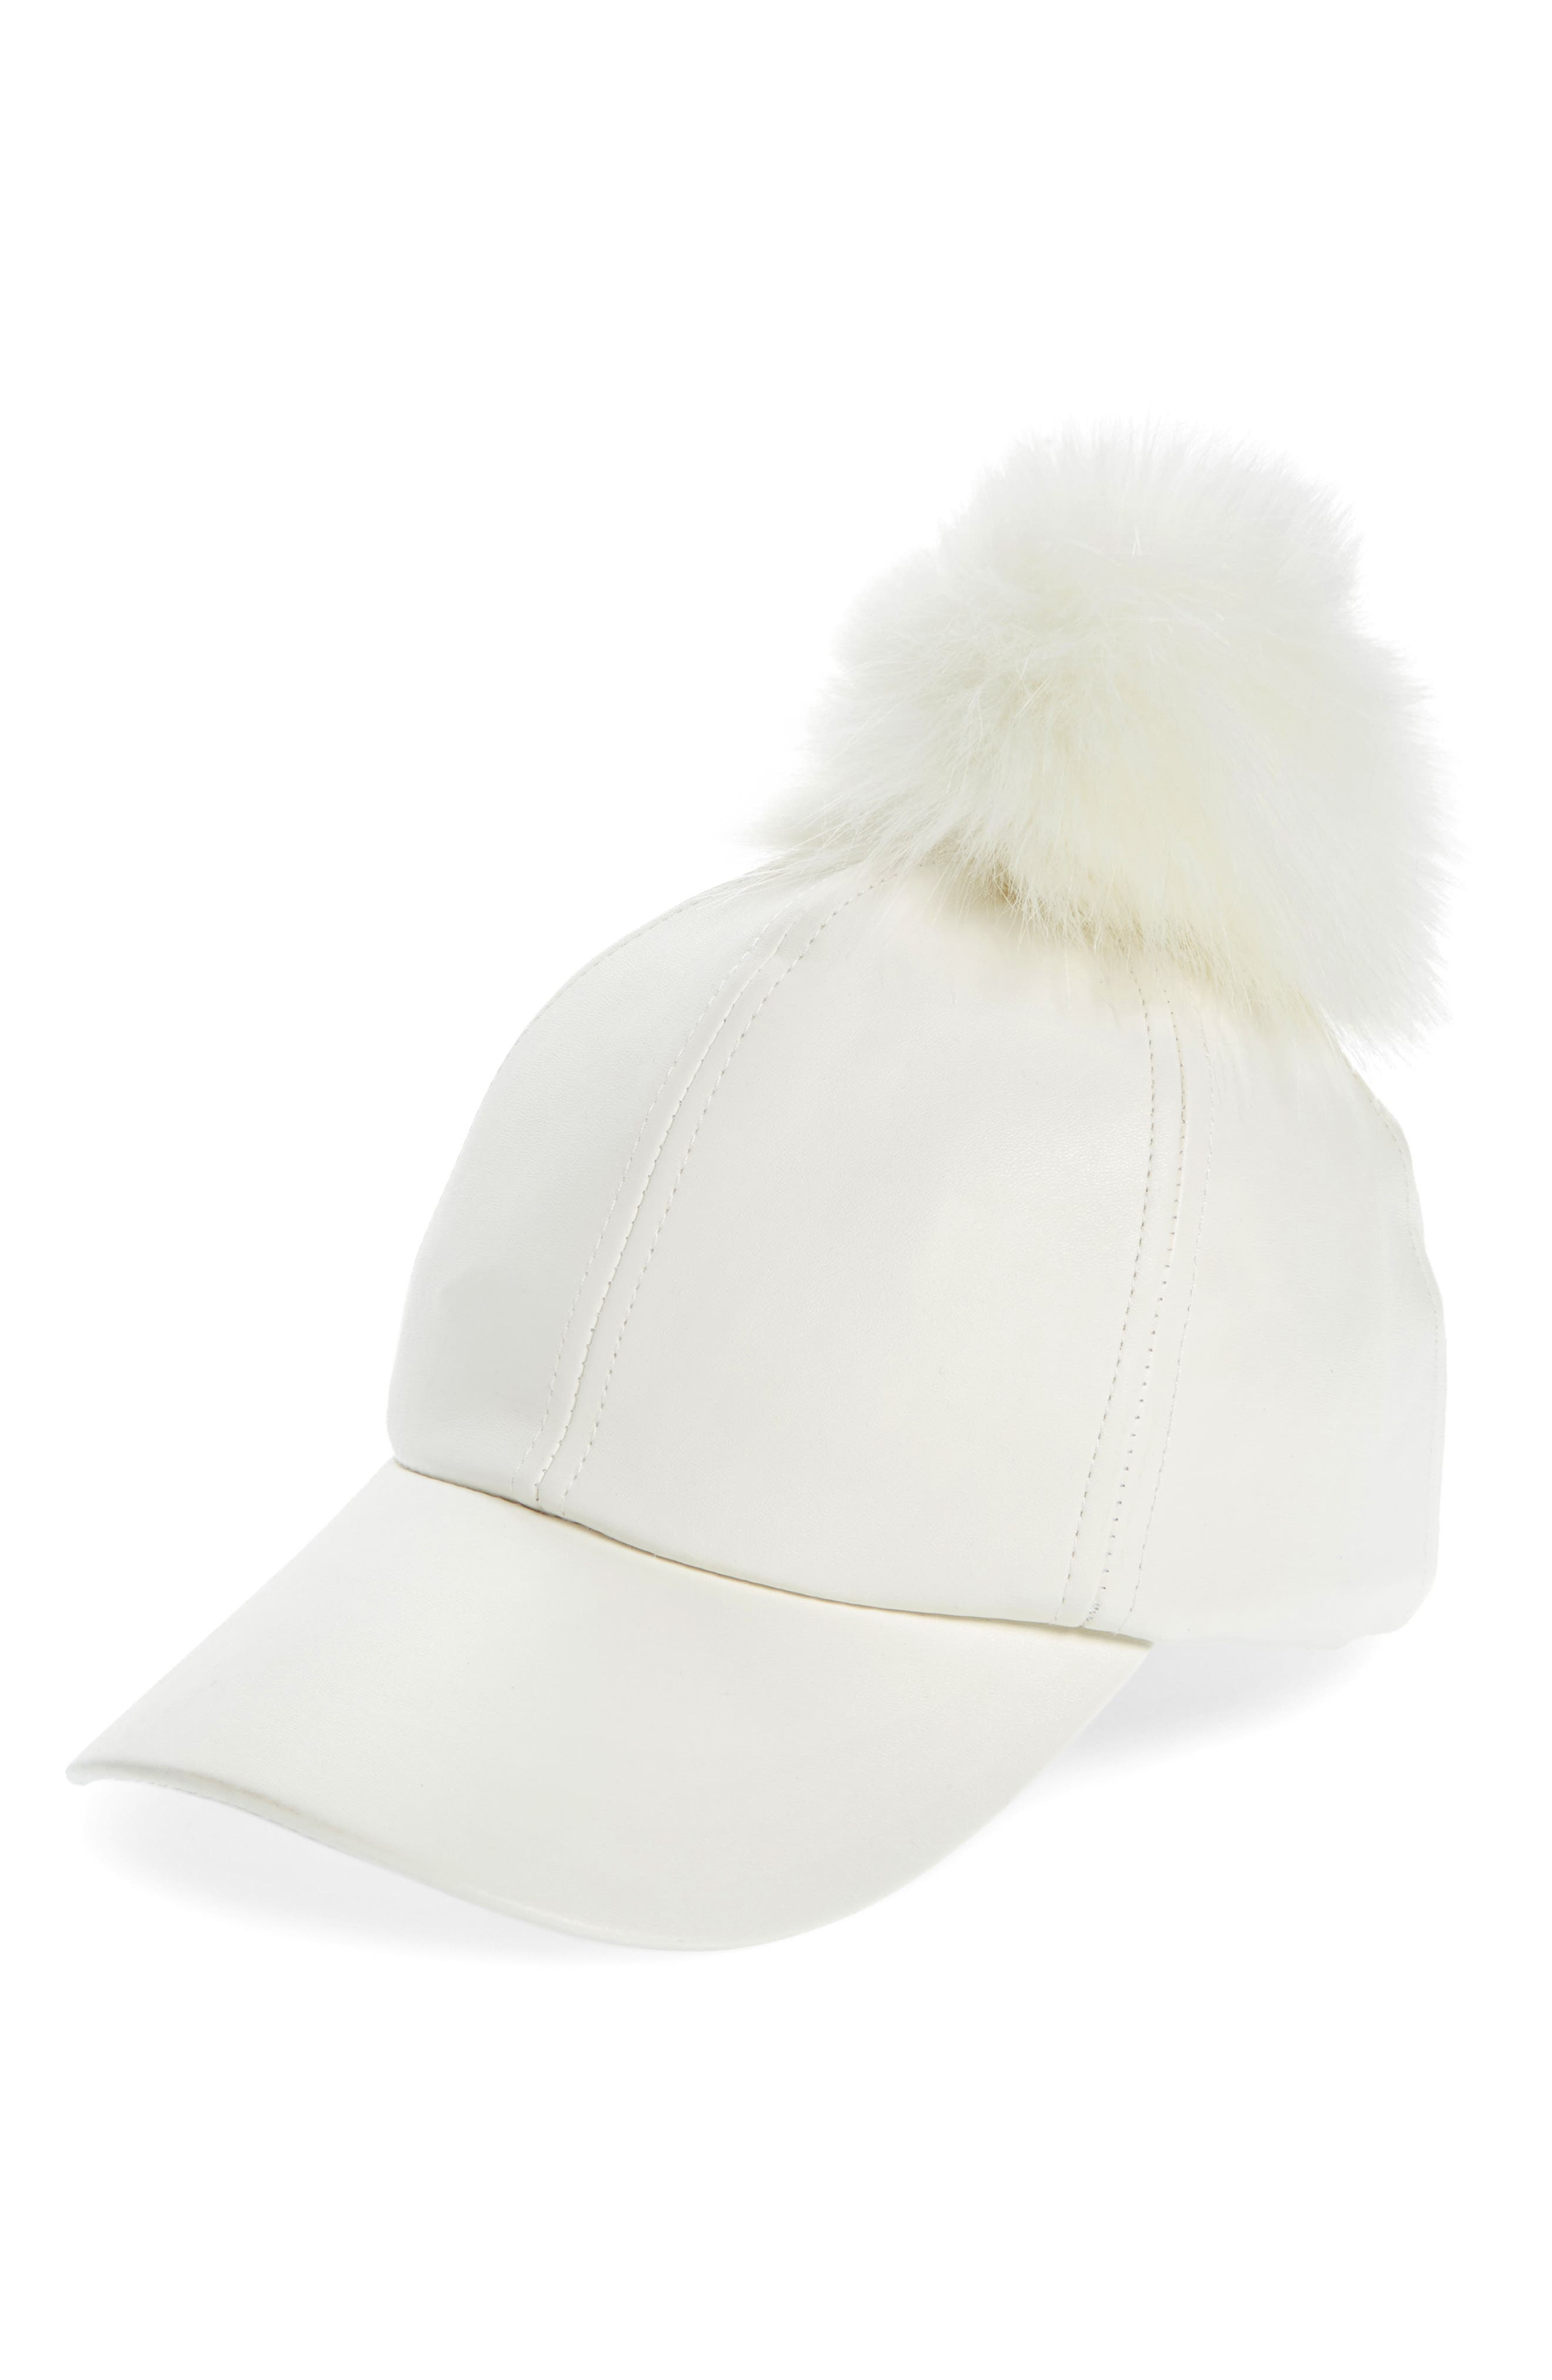 Evelyn K Faux Leather Cap with Faux Fur Pompom